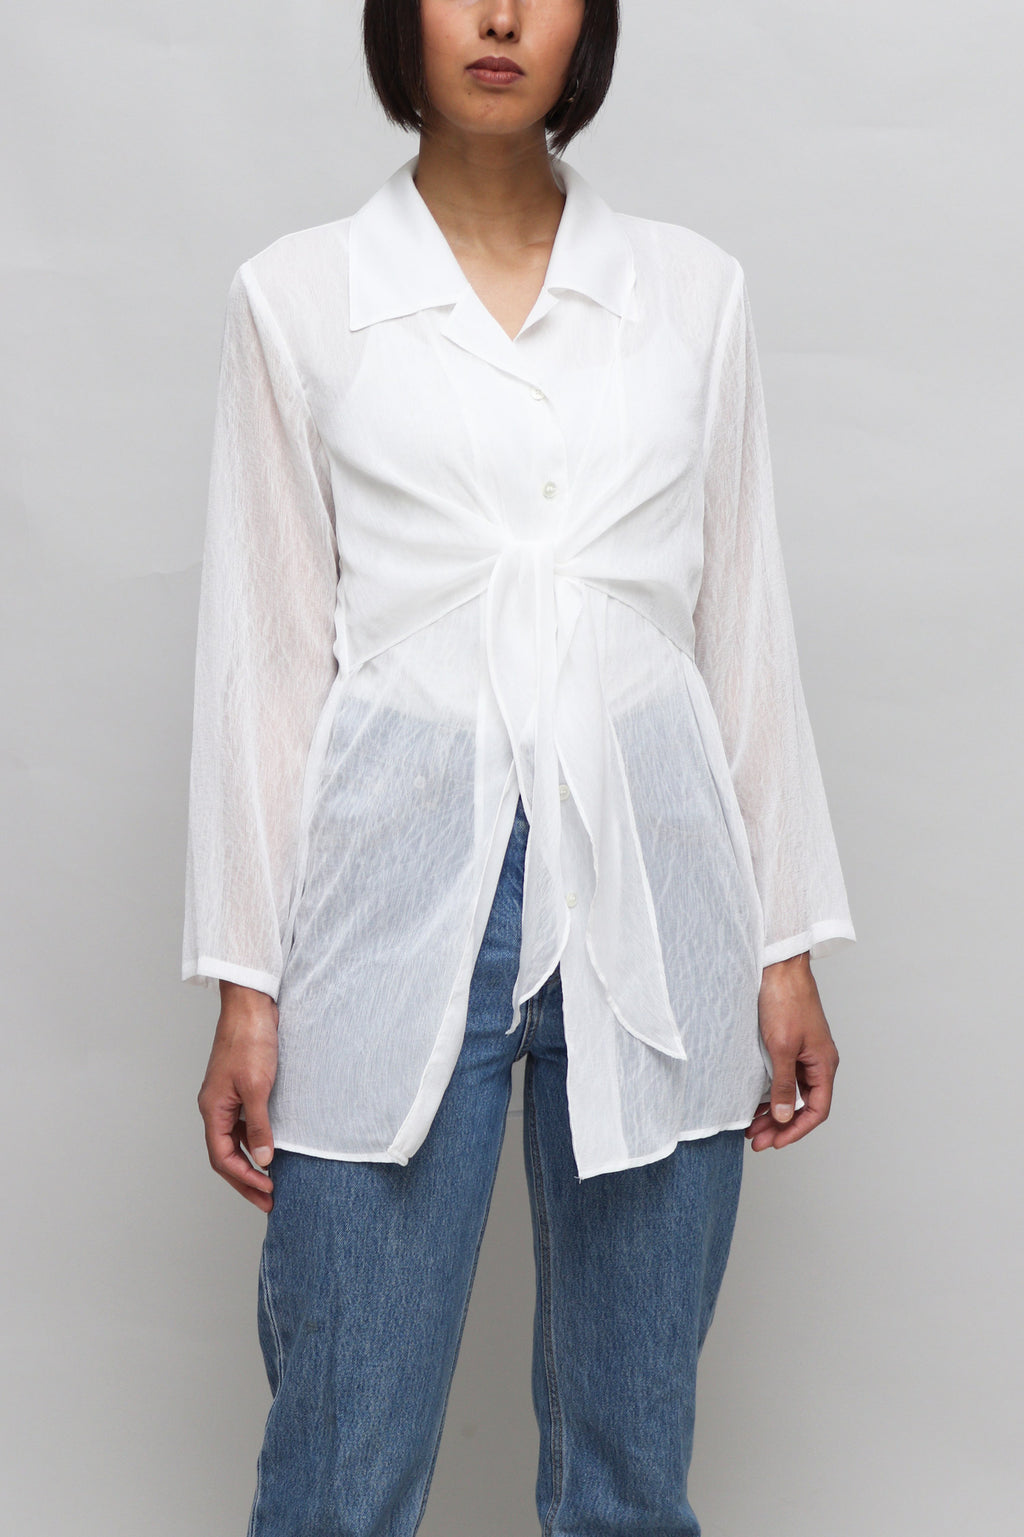 White Sheer Tied Blouse